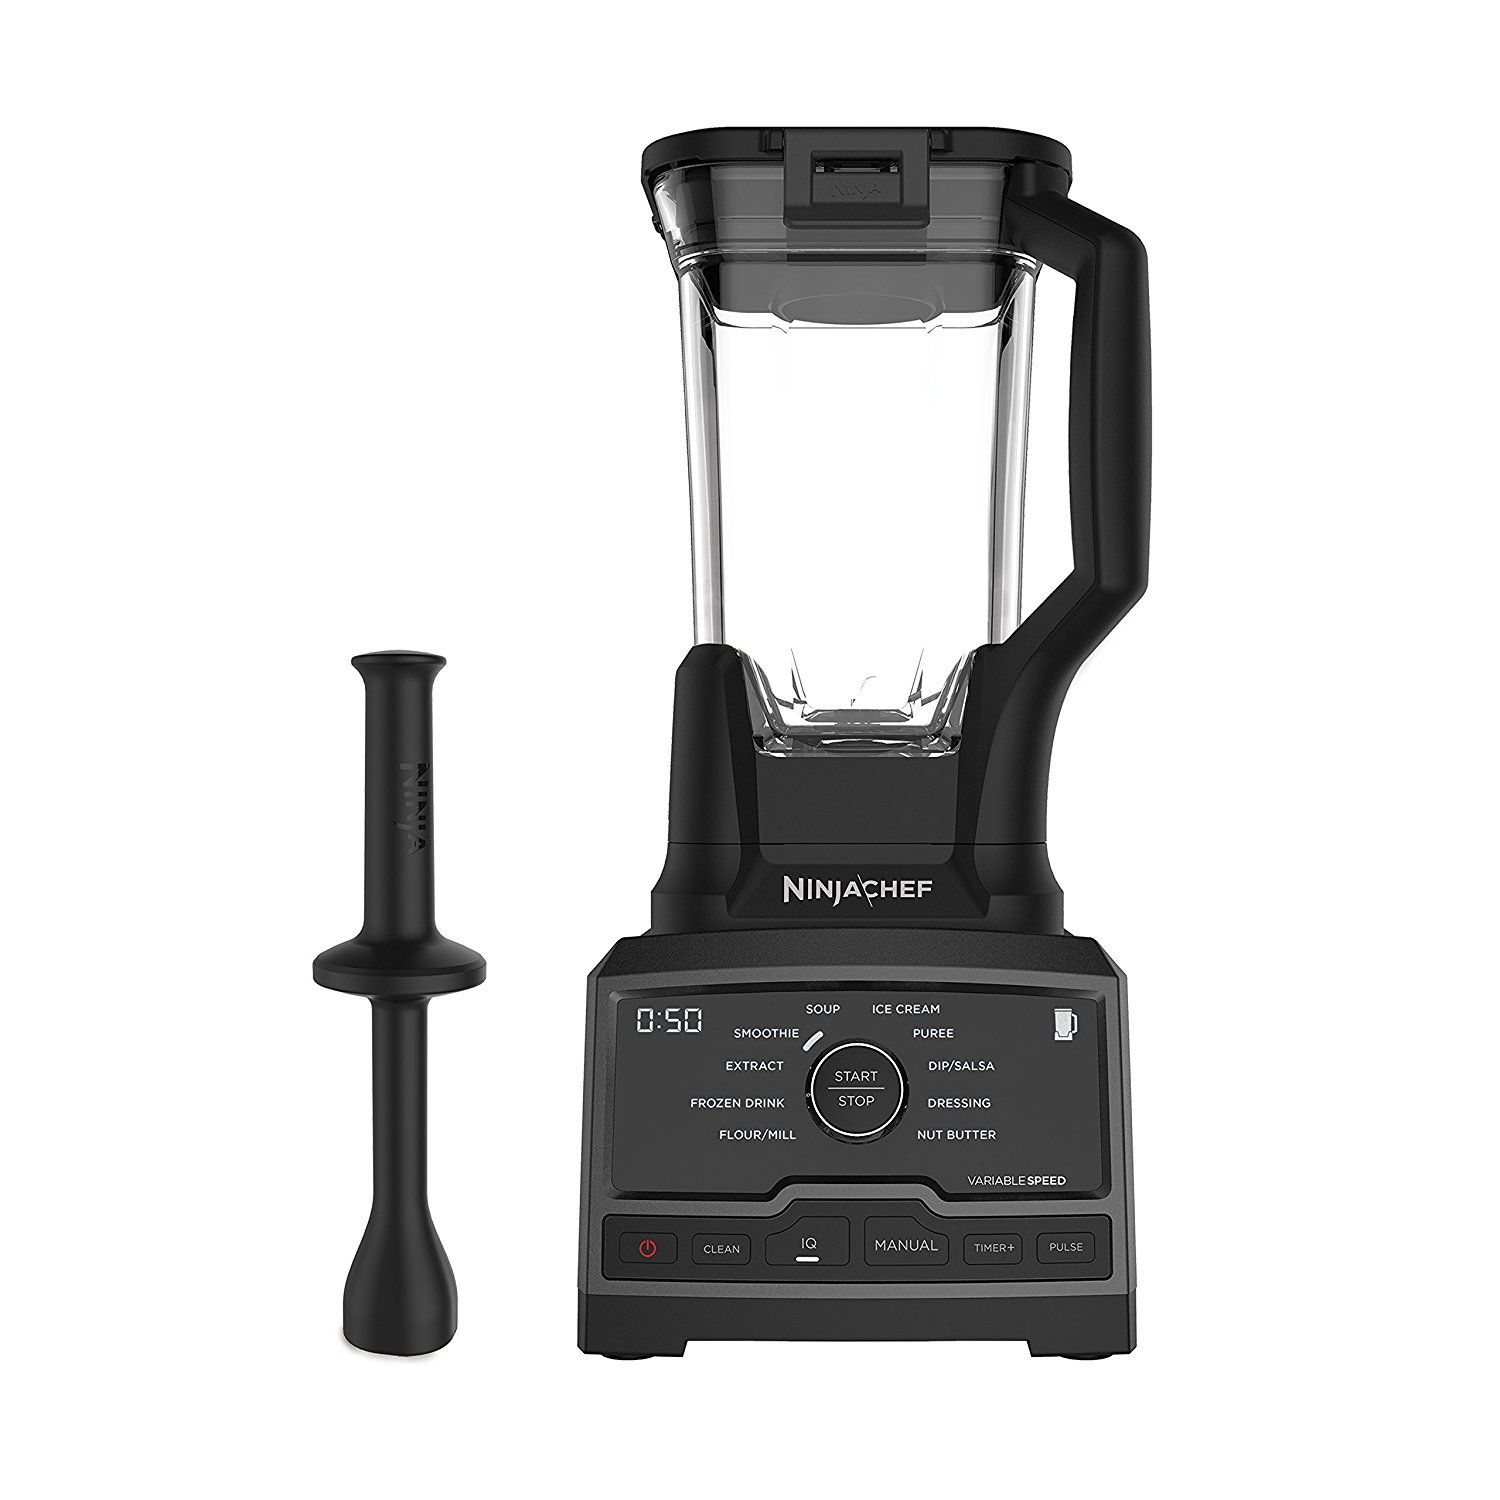 Amazon Ninja Chef 1500 Watt High Speed Blender Blender Ninja